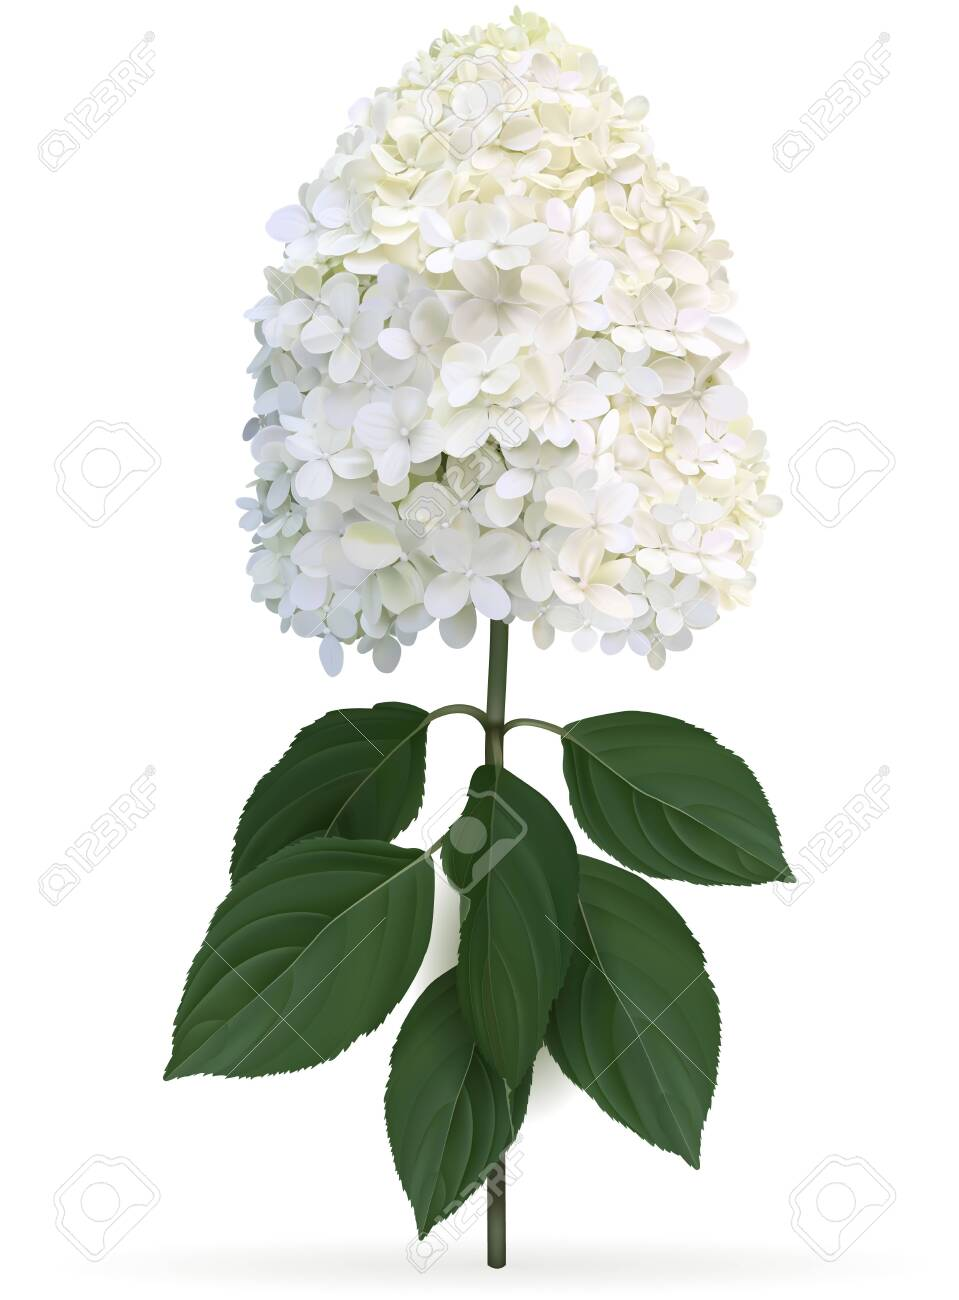 Hydrangea paniculata Limelight in late summer, high quality detailed illustration on a white background. This sort is winter hardy and change color from lime green to creamy white in late summer - 131788434